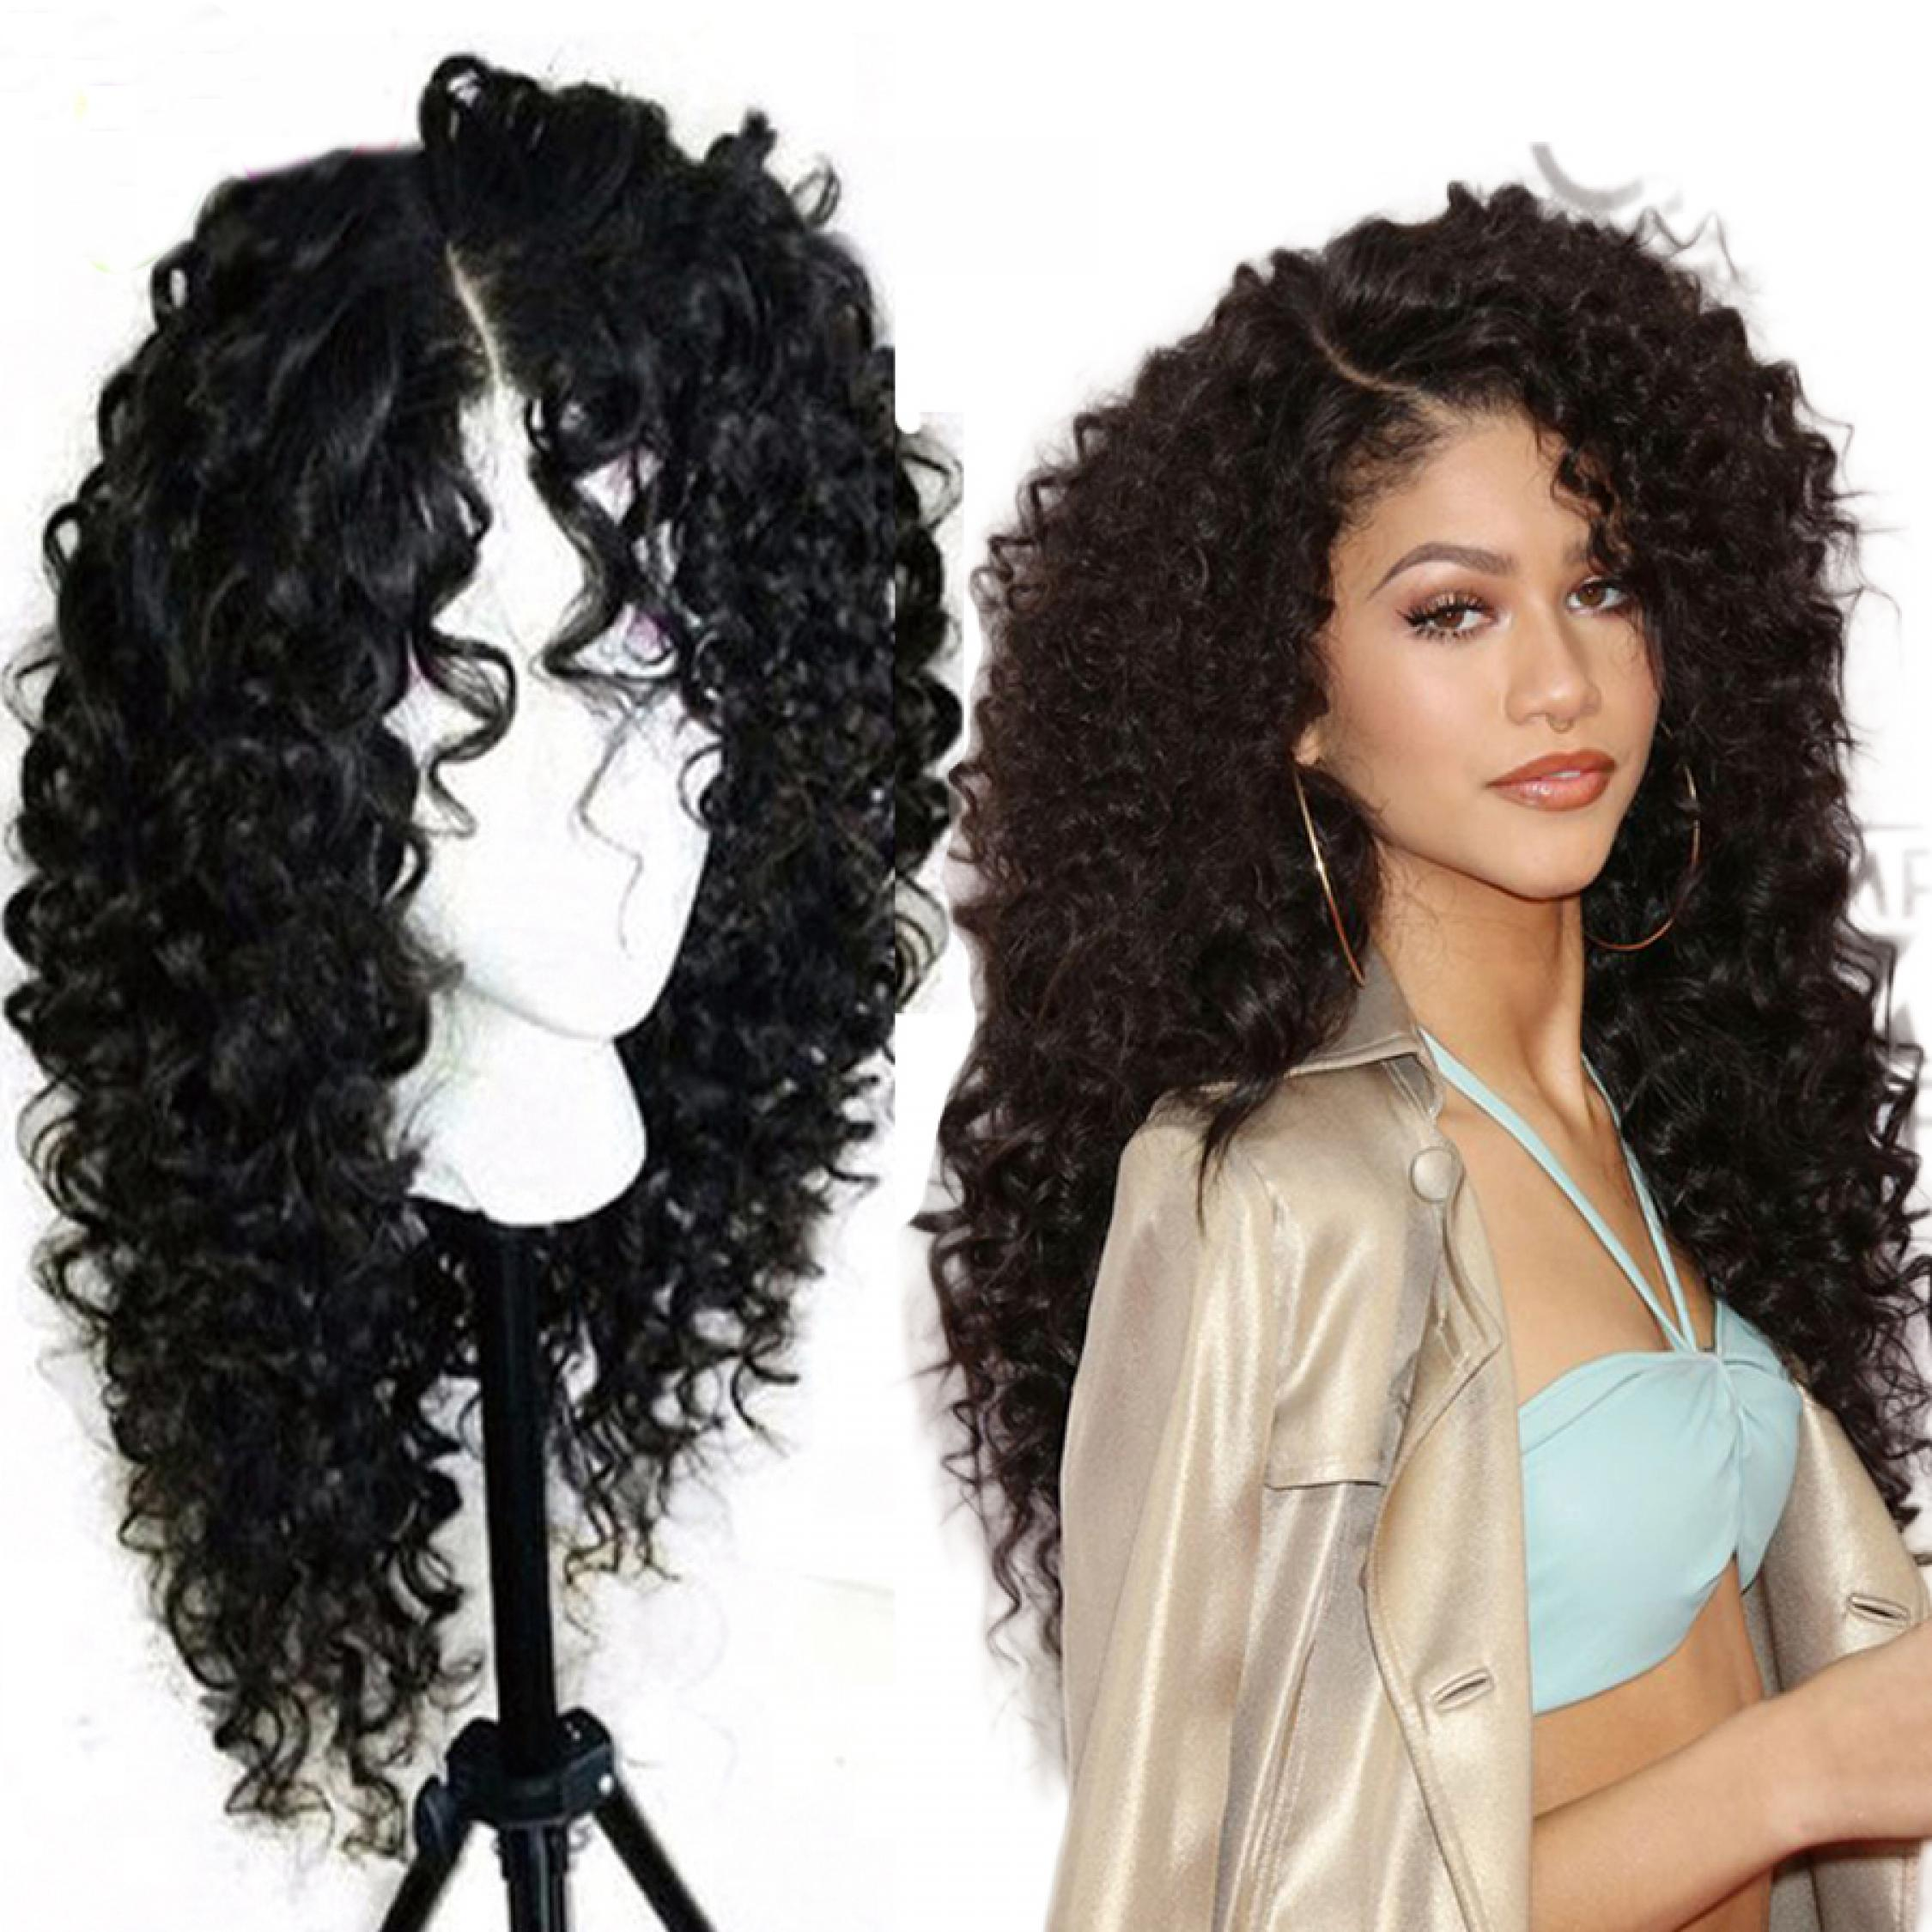 150 Density Beautiful Curly Lace Front Wig Synthetic | 150